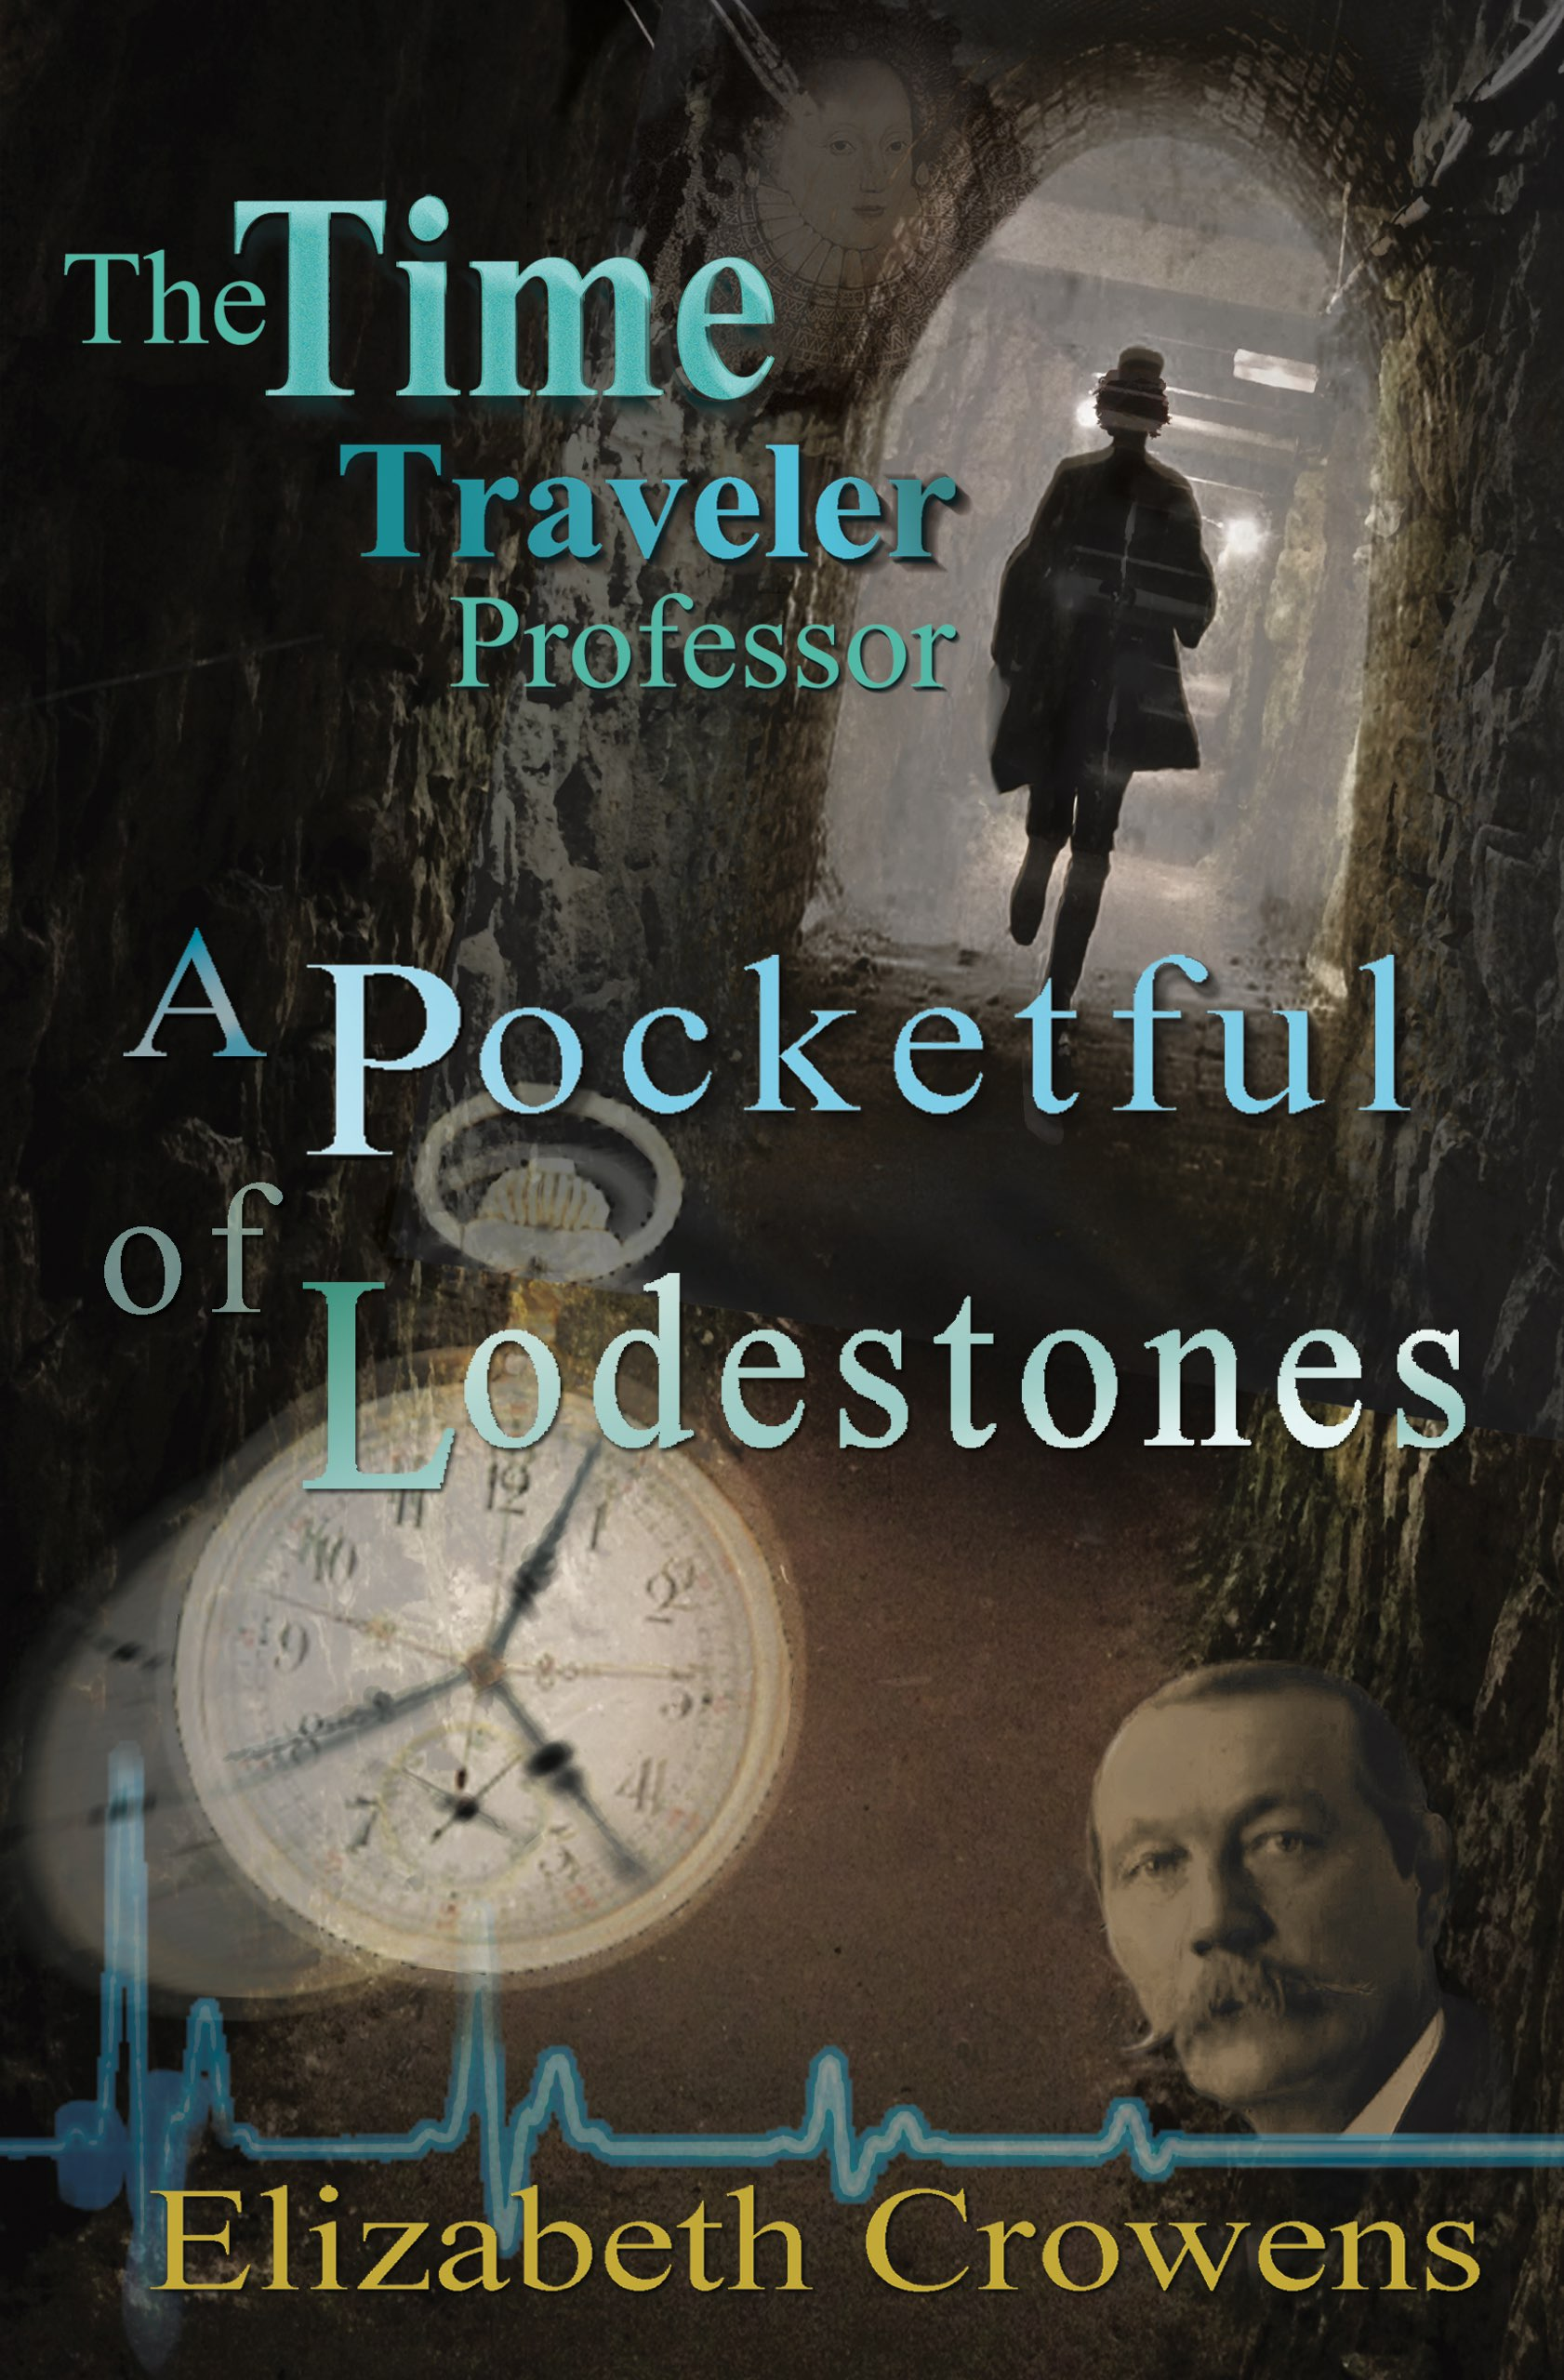 The Time Traveler Professor, Book Two: A Pocketful of Lodestones by Elizabeth Crowens